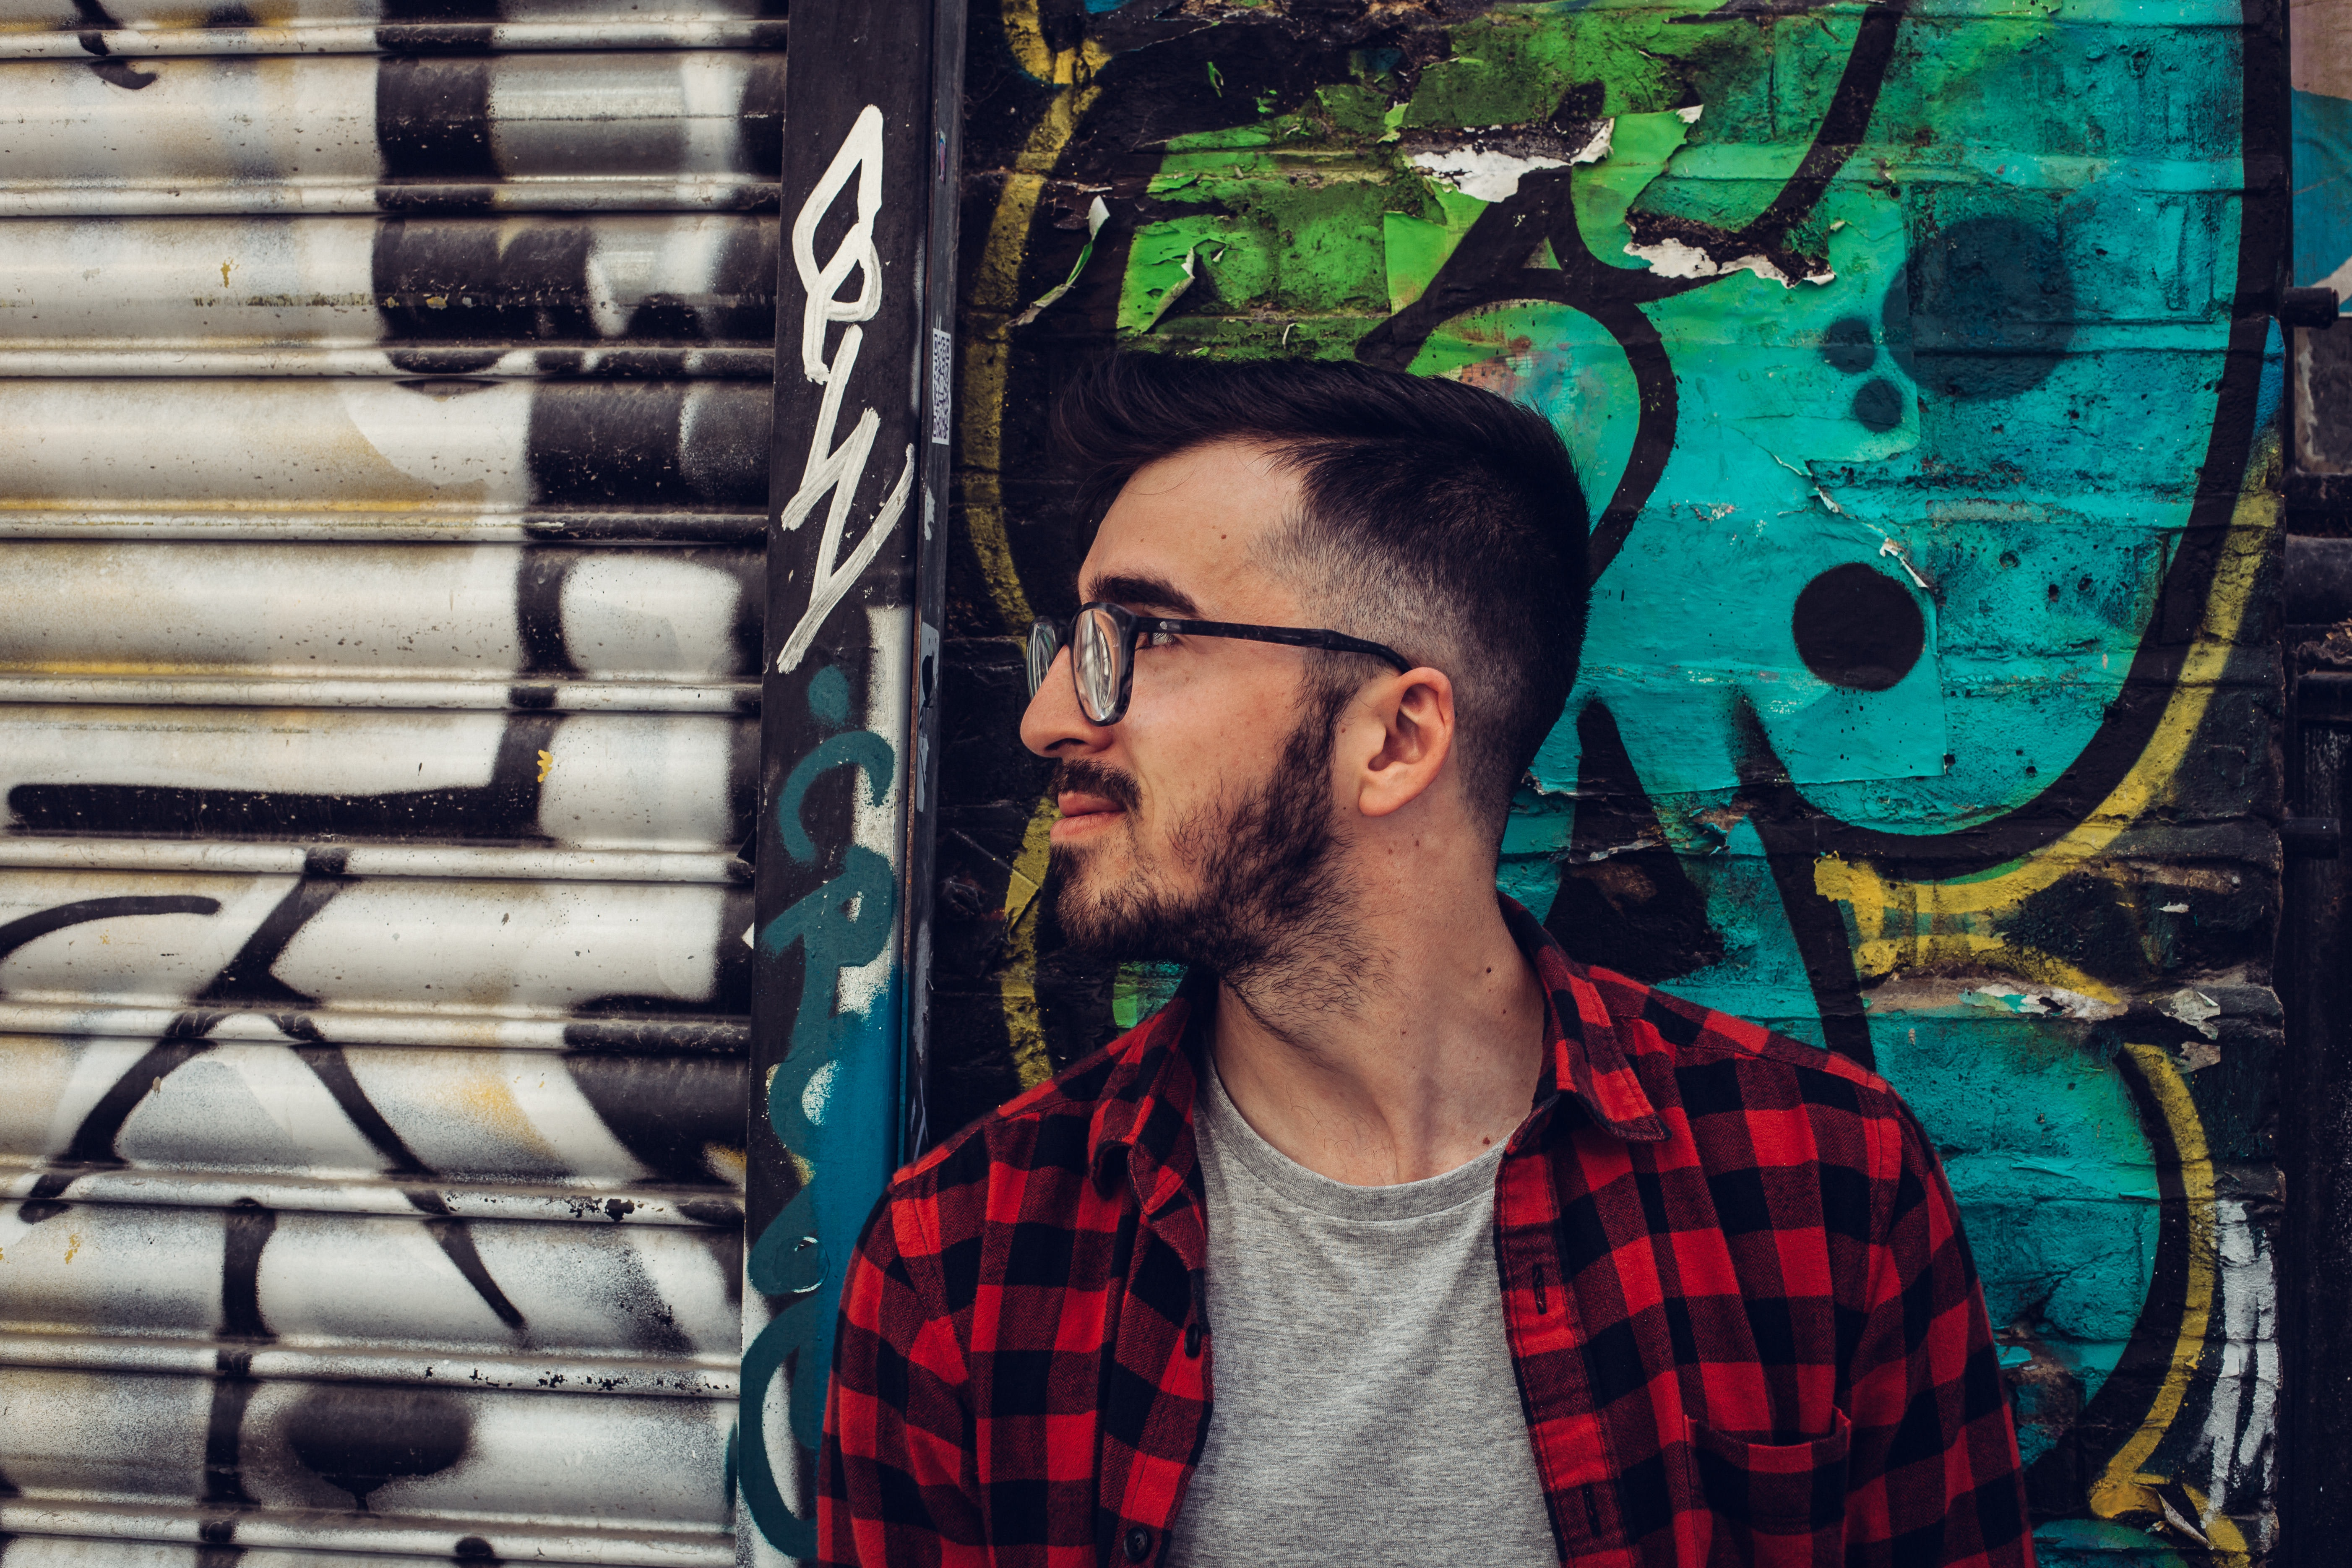 Man Wearing Black Framed Eyeglasses Standing Beside Blue and Black Wall, Abandoned, Person, Wall, Vandalism, HQ Photo